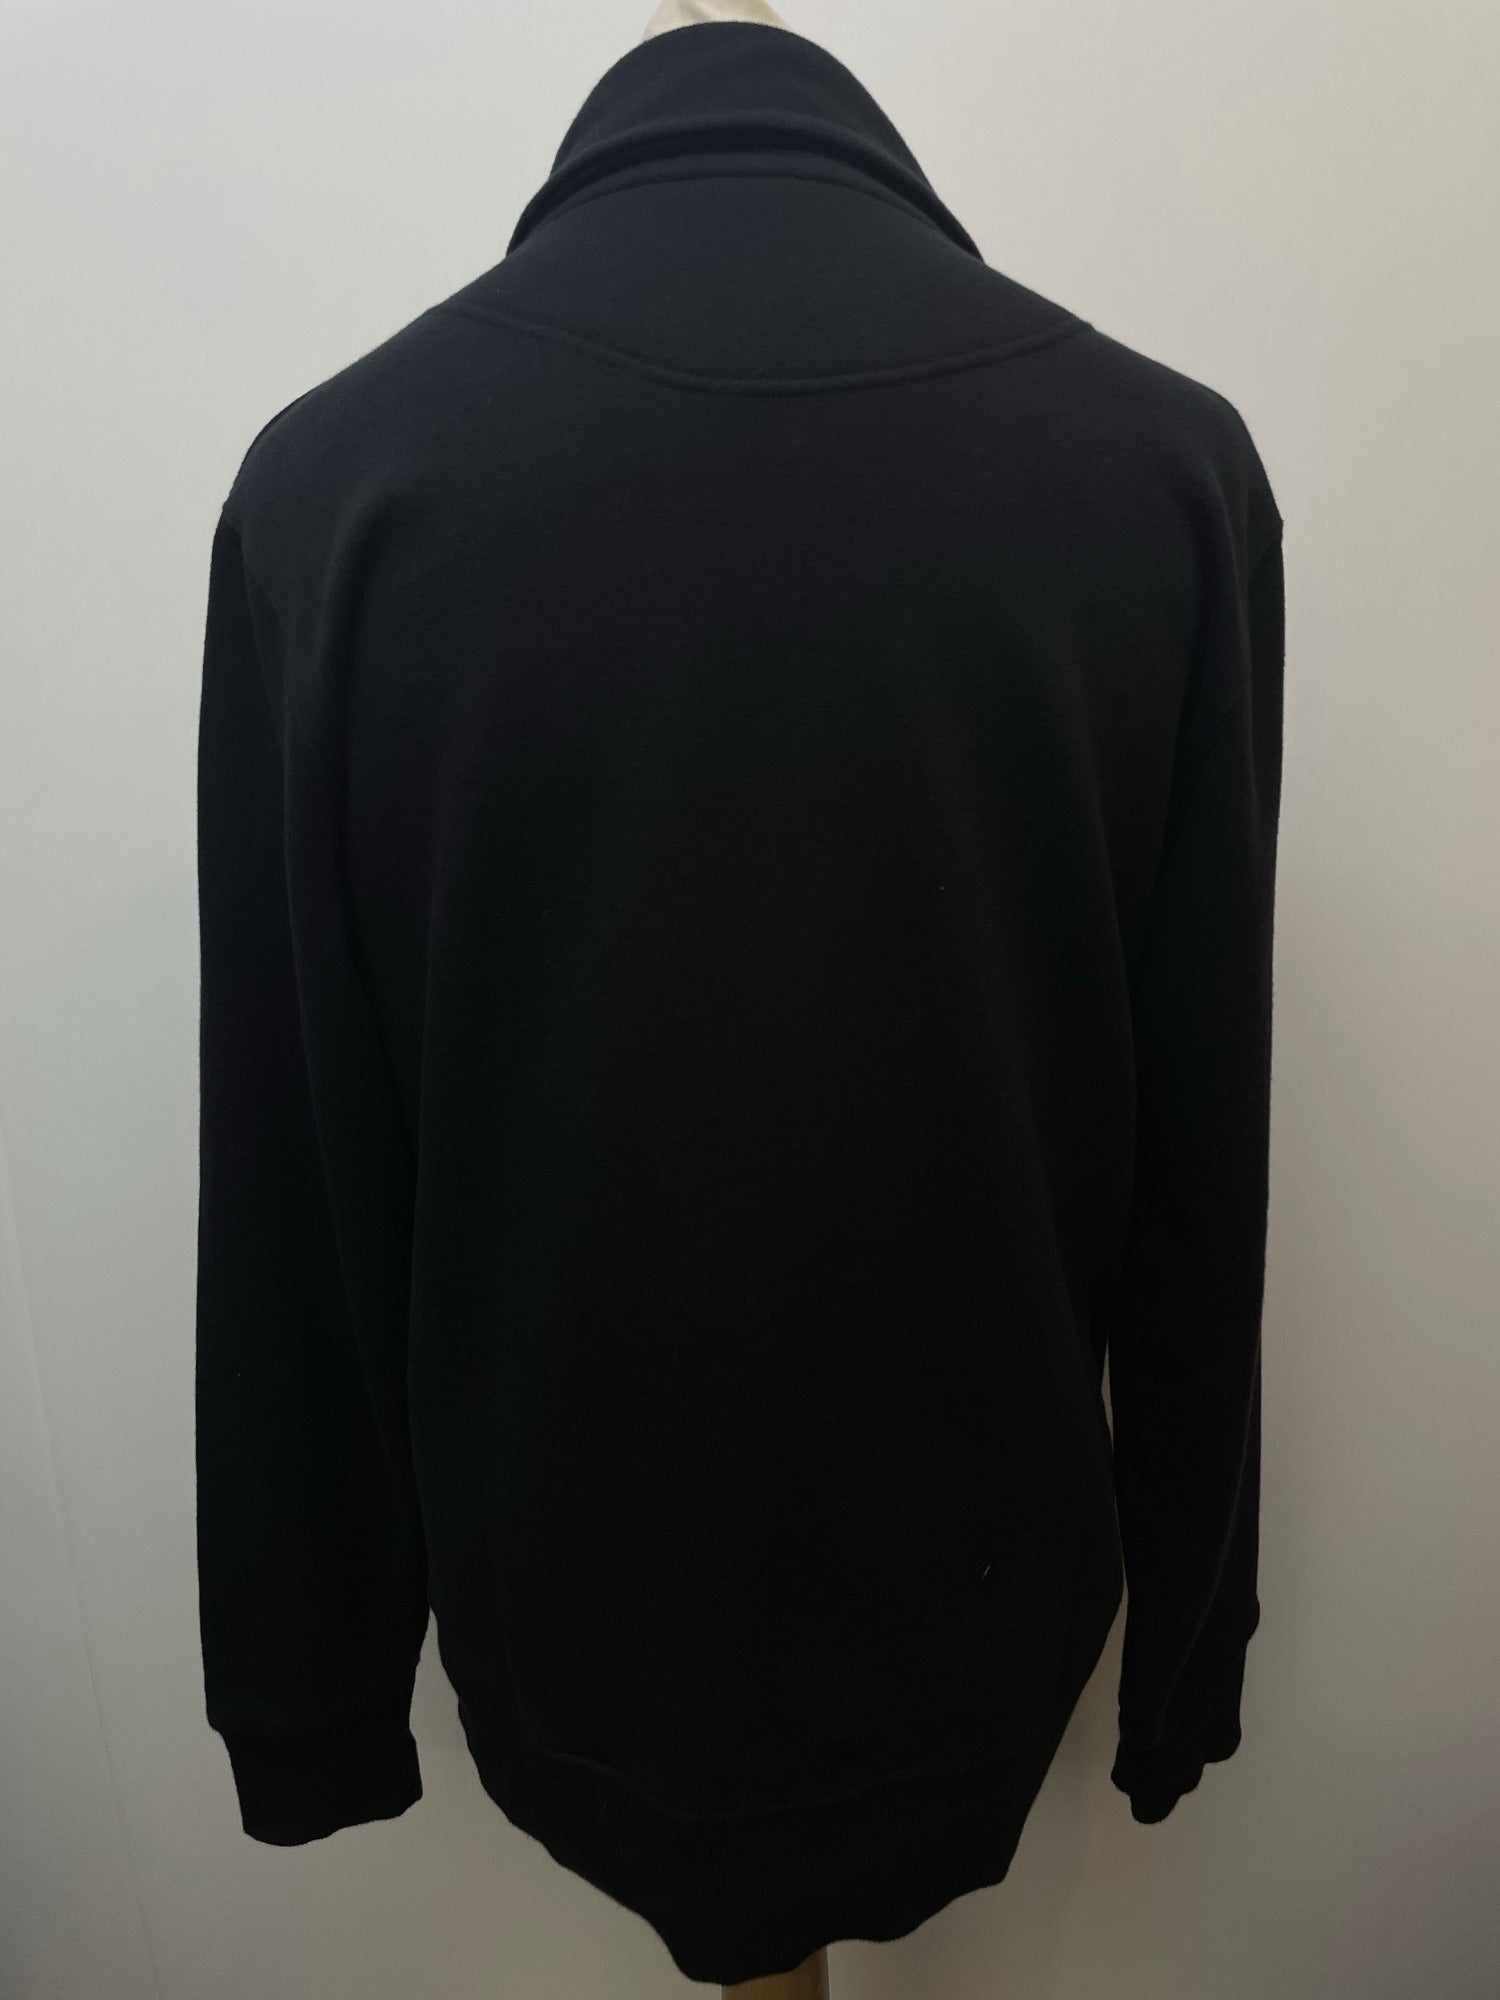 vintage  Urban Village Vintage  urban village  sweater  pullover  mens  l  jumper  Fred Perry  Cotton  black